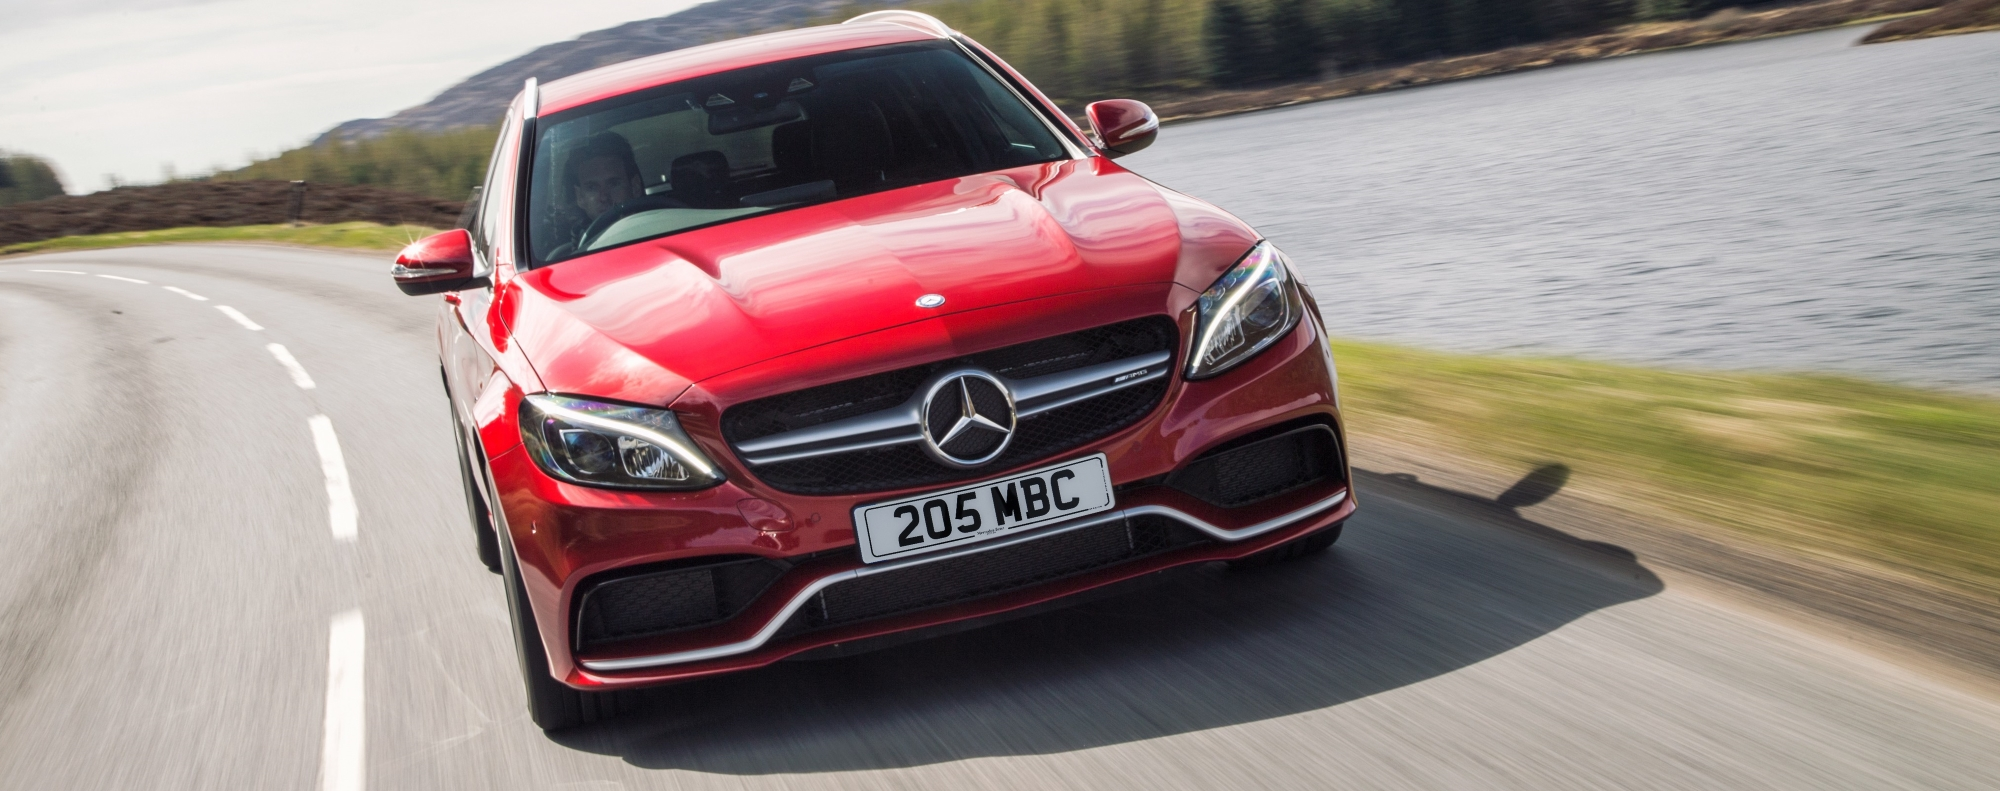 Mercedes-Benz Joins Android's Open Automotive Alliance